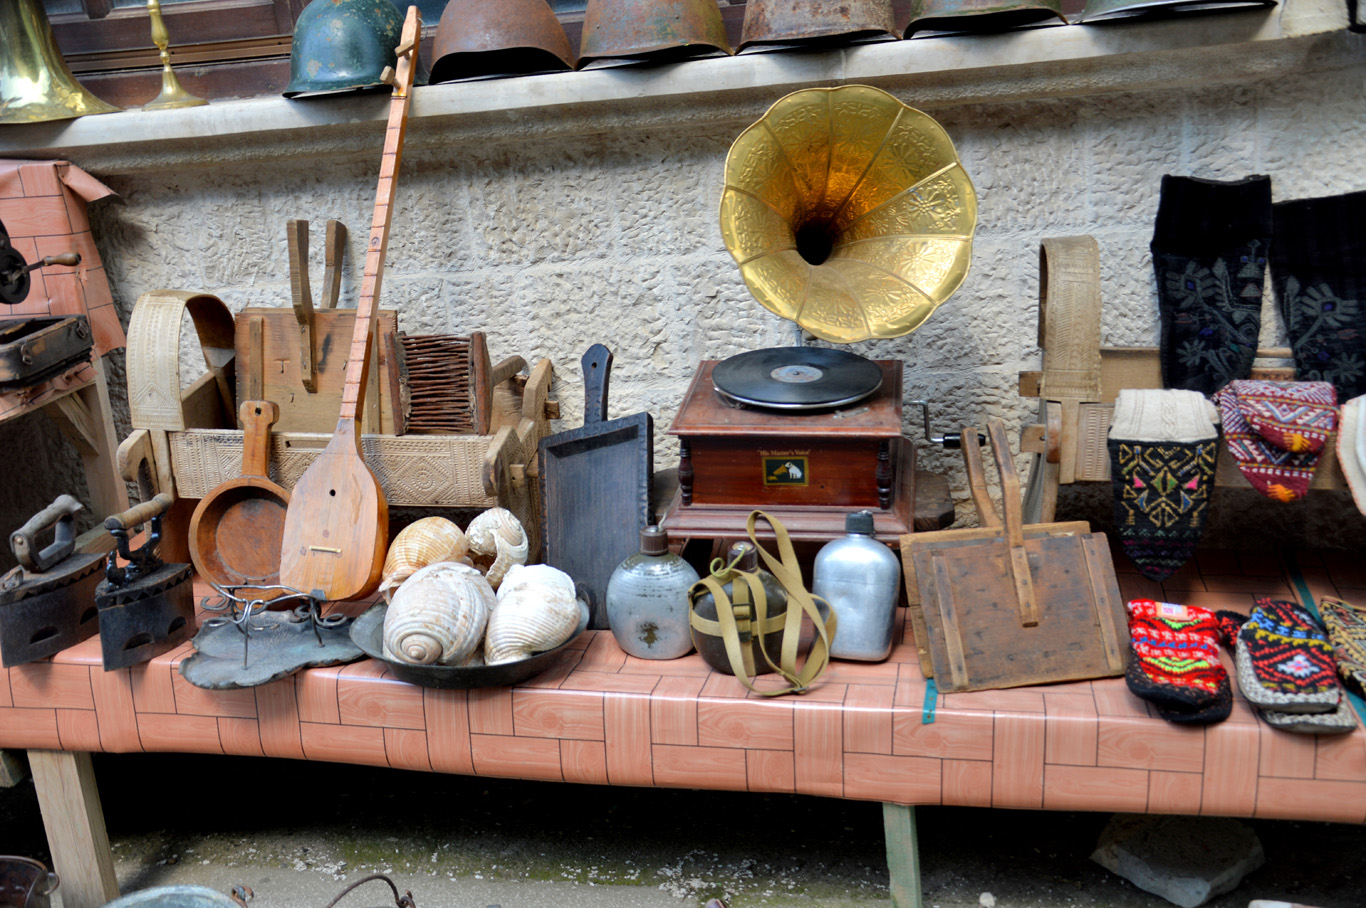 Antiques at the market